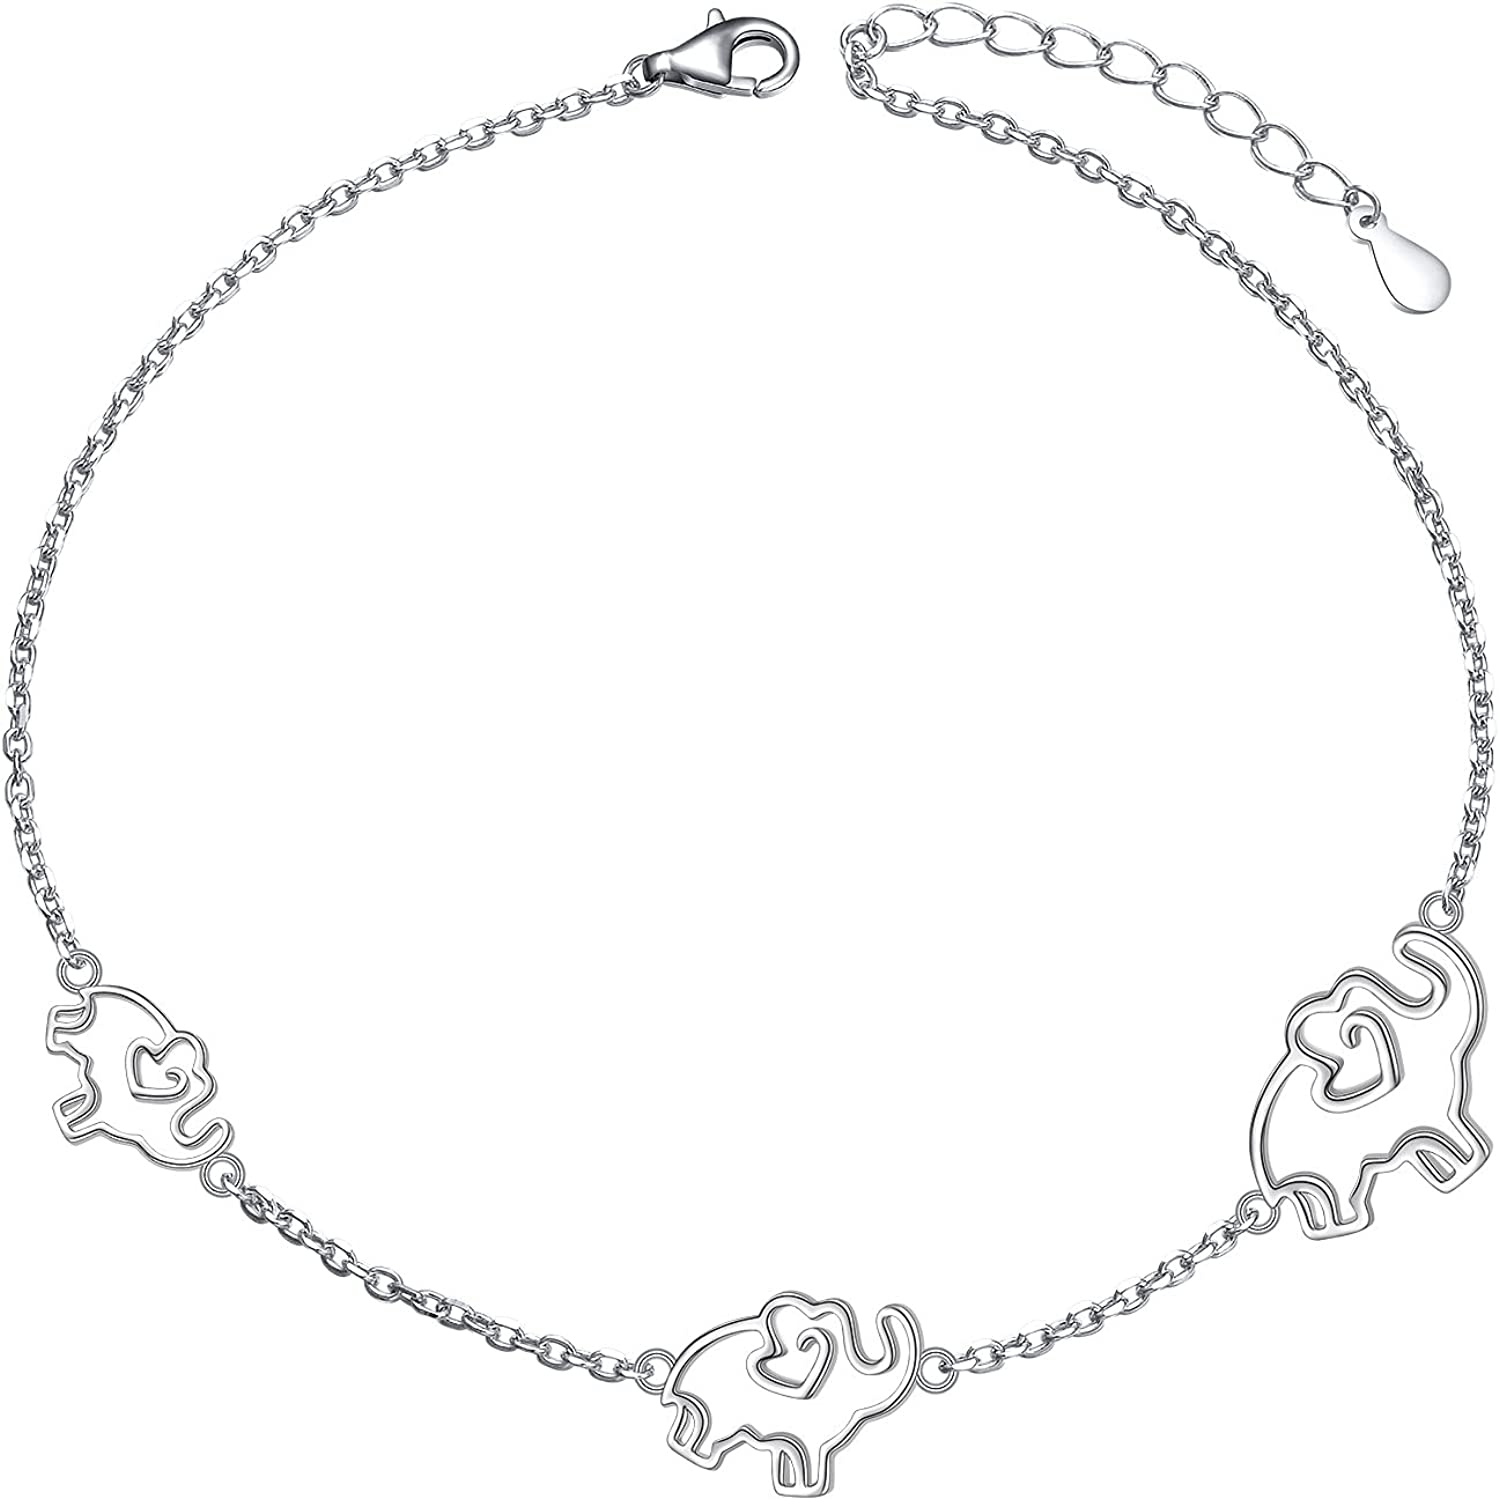 Anklets for Fashionable Women S925 Sterling Foot Award-winning store Adjustable Silver Ank Beach